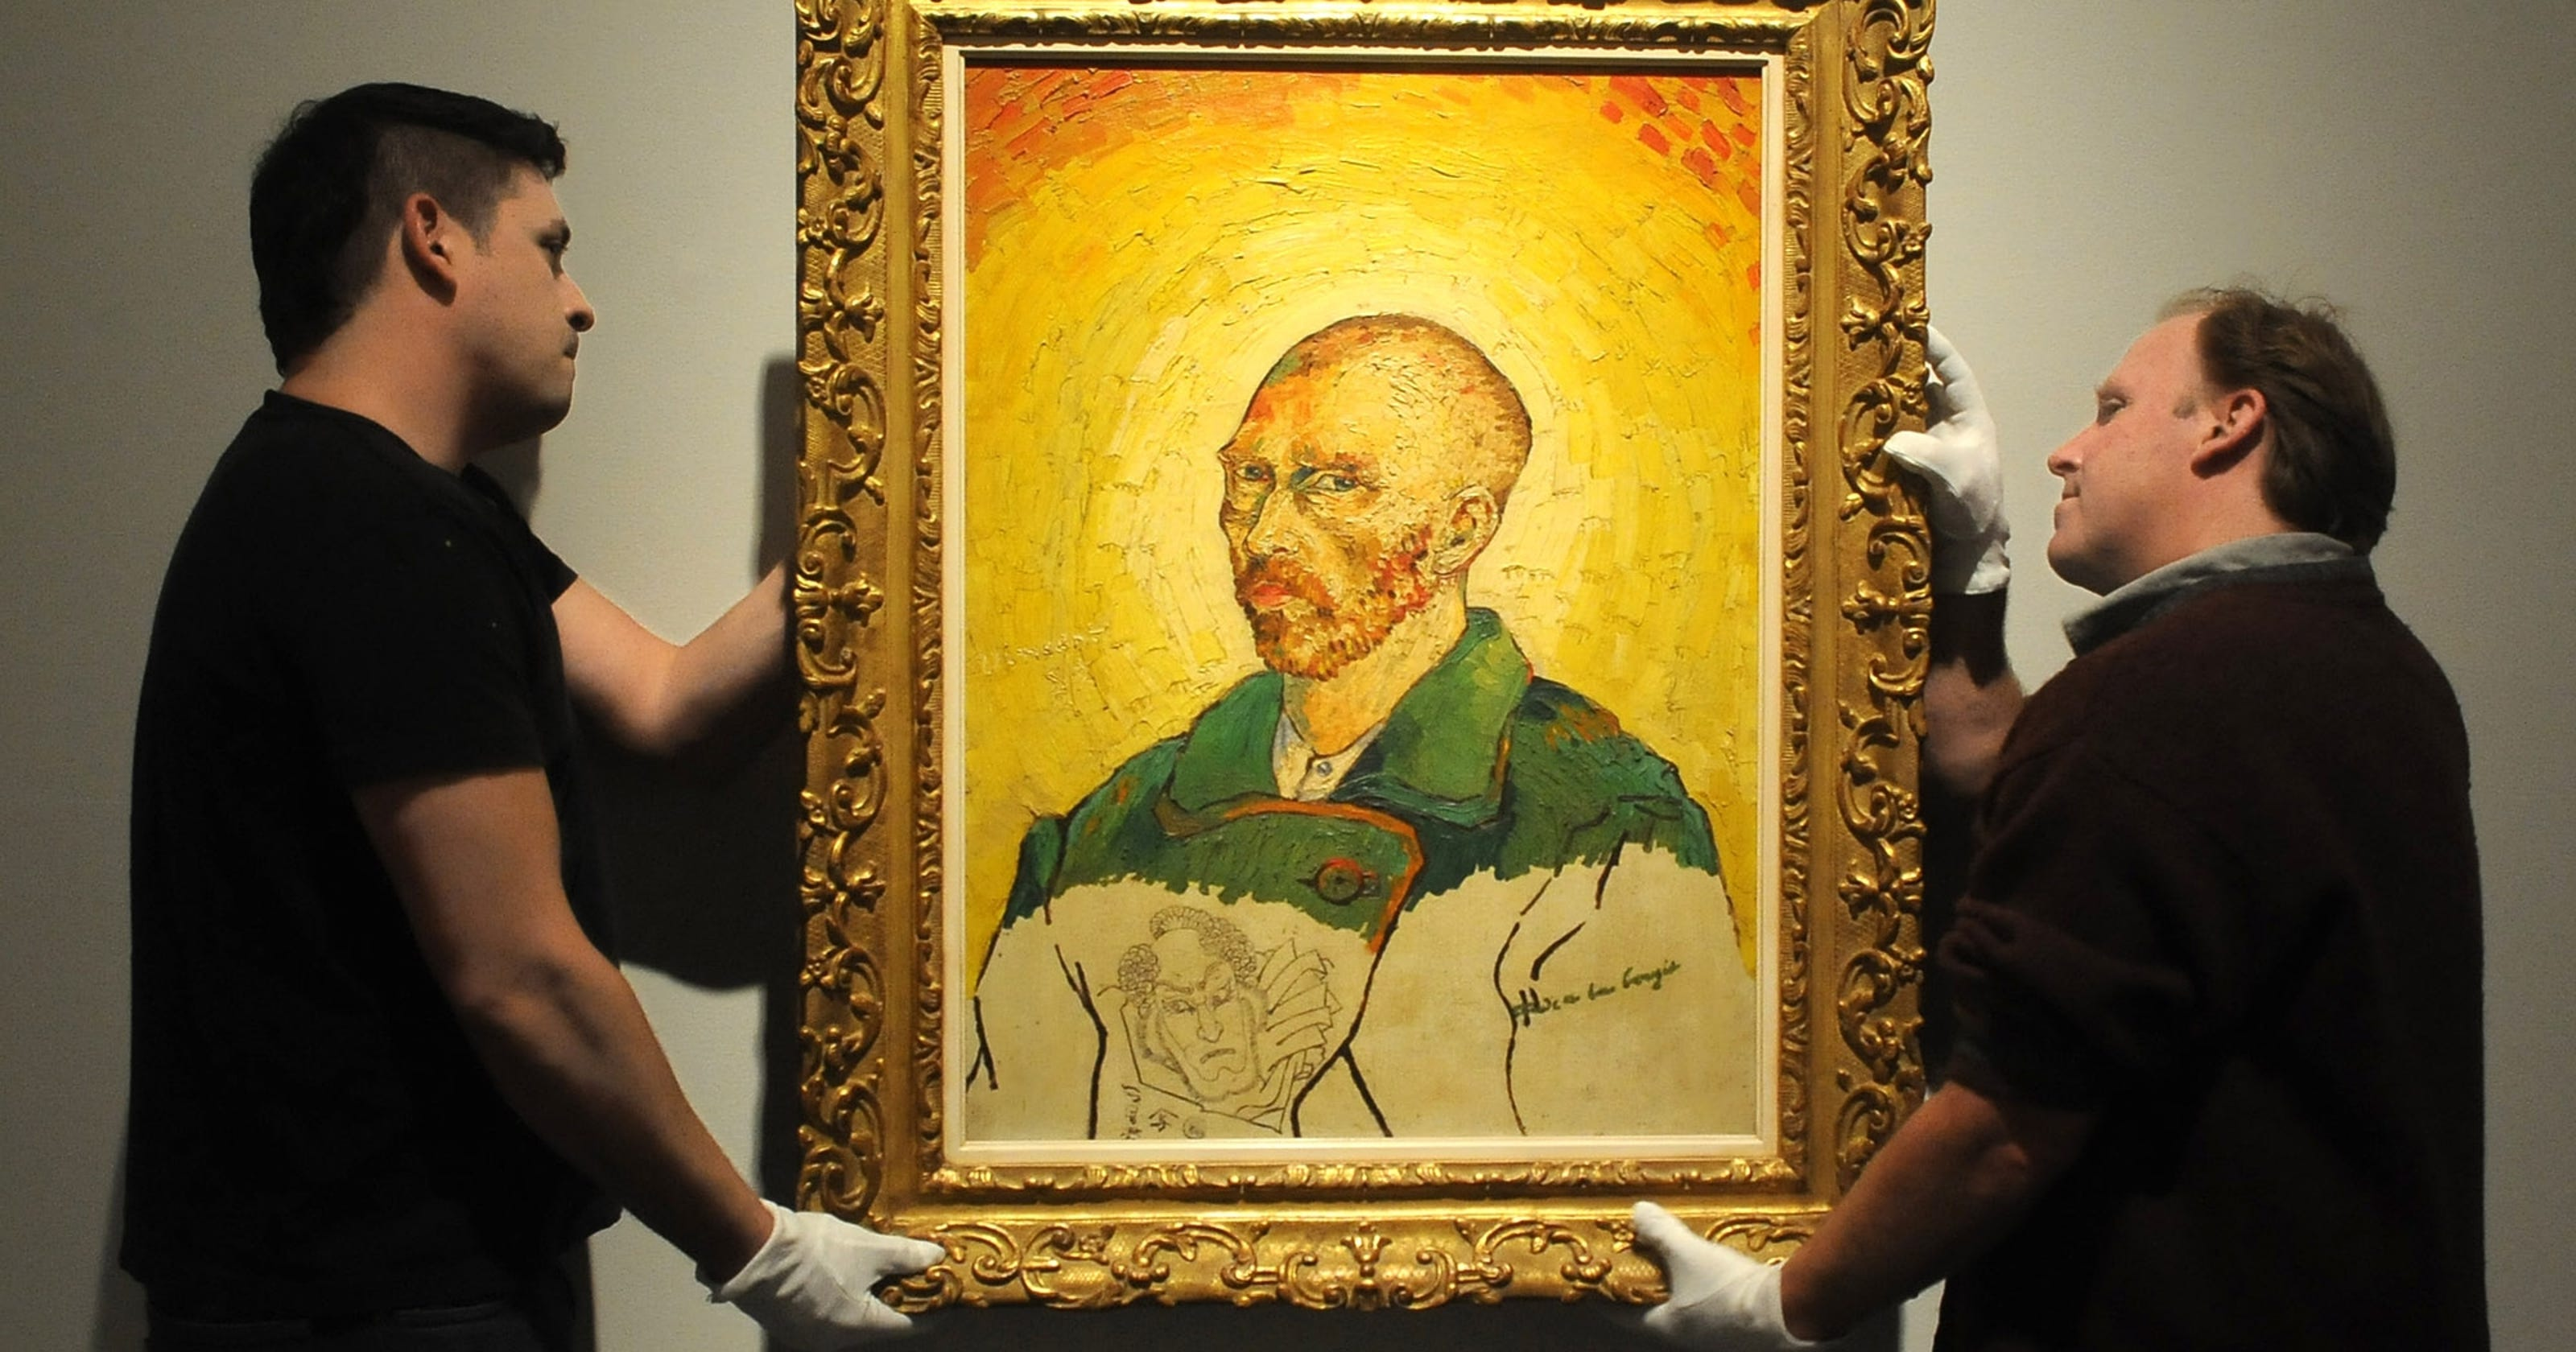 Museum unveils disputed painting not seen in decades